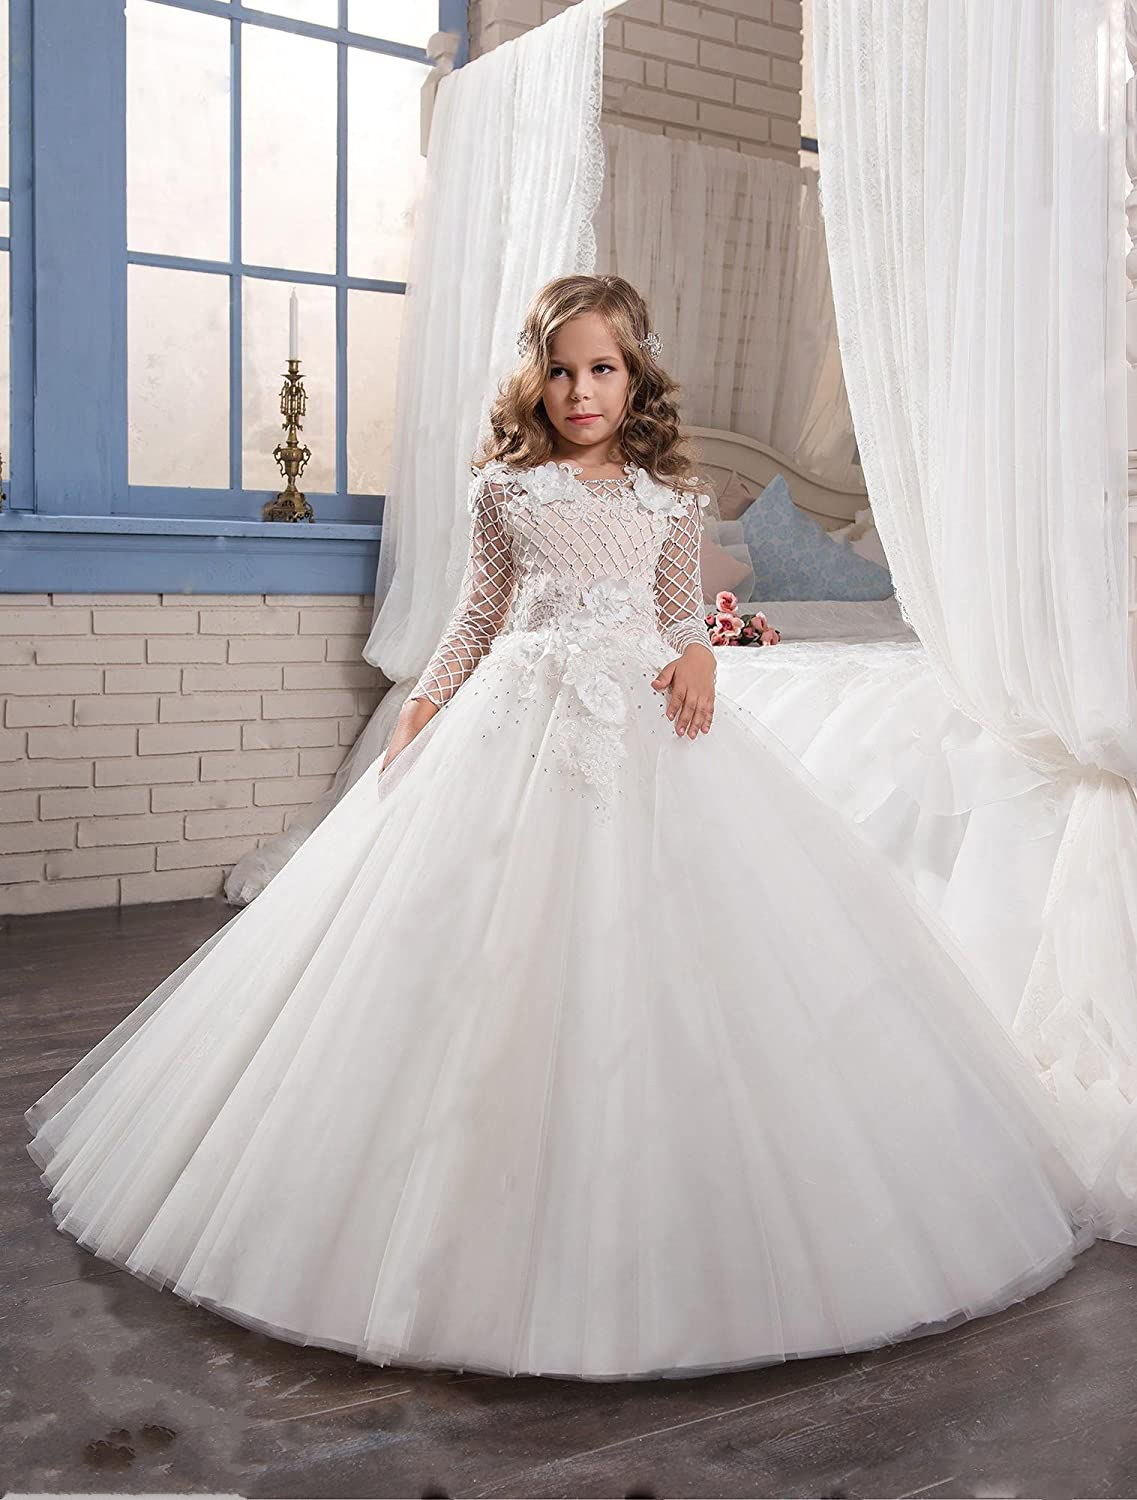 Amazon.com: Gzcdress Long Sleeves Flower Girl Dress for Wedding 2018 White Communion Dresses Tulle Floor Length 81: Clothing